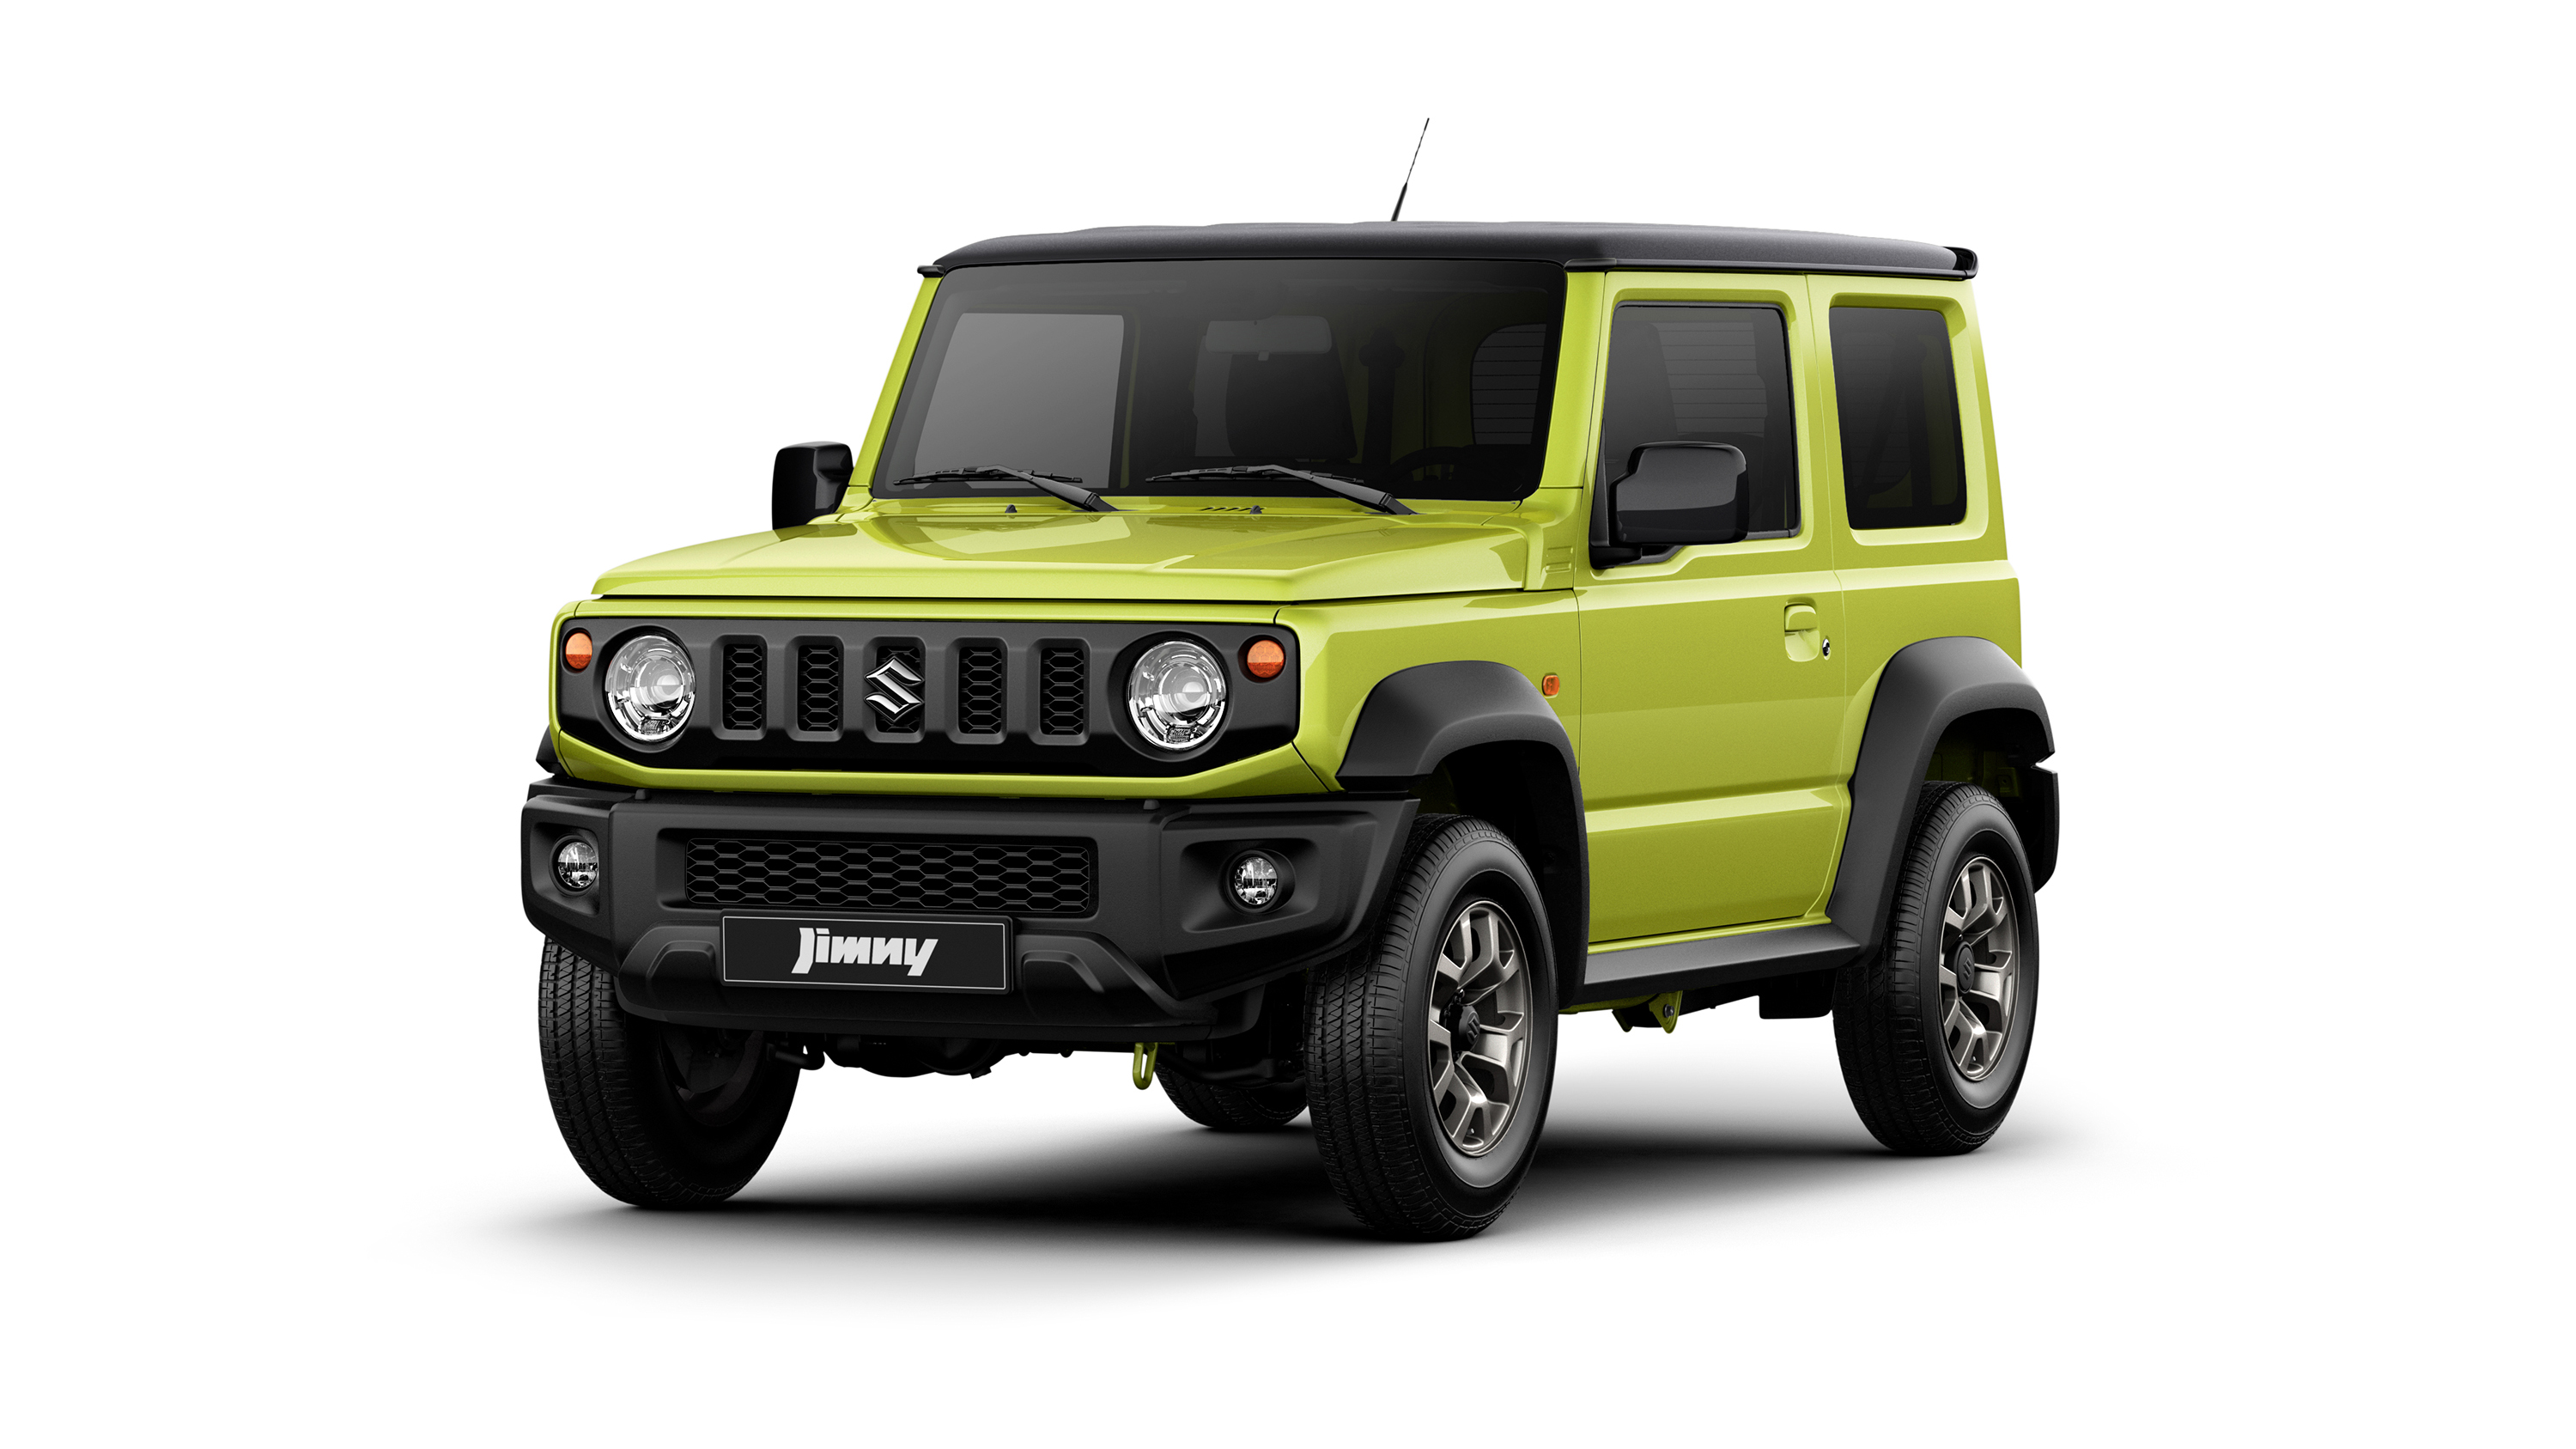 European specifications revealed for Suzuki Jimny Motors